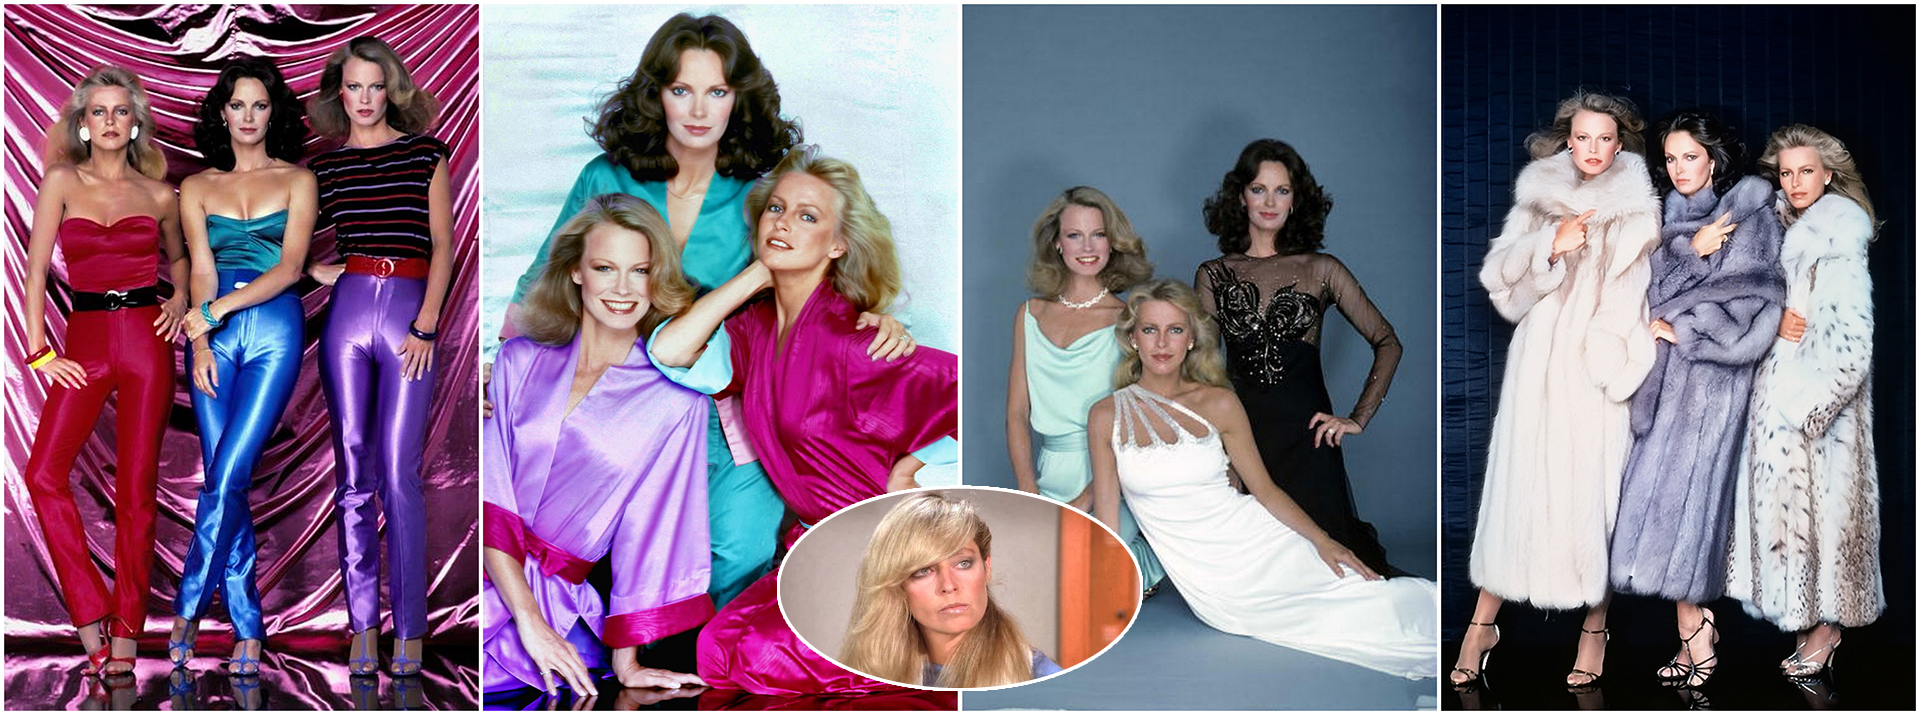 Charlie's Angels - Season 4: Jaclyn Smith, Cheryl Ladd, Shelley Hack & Farrah Fawcett